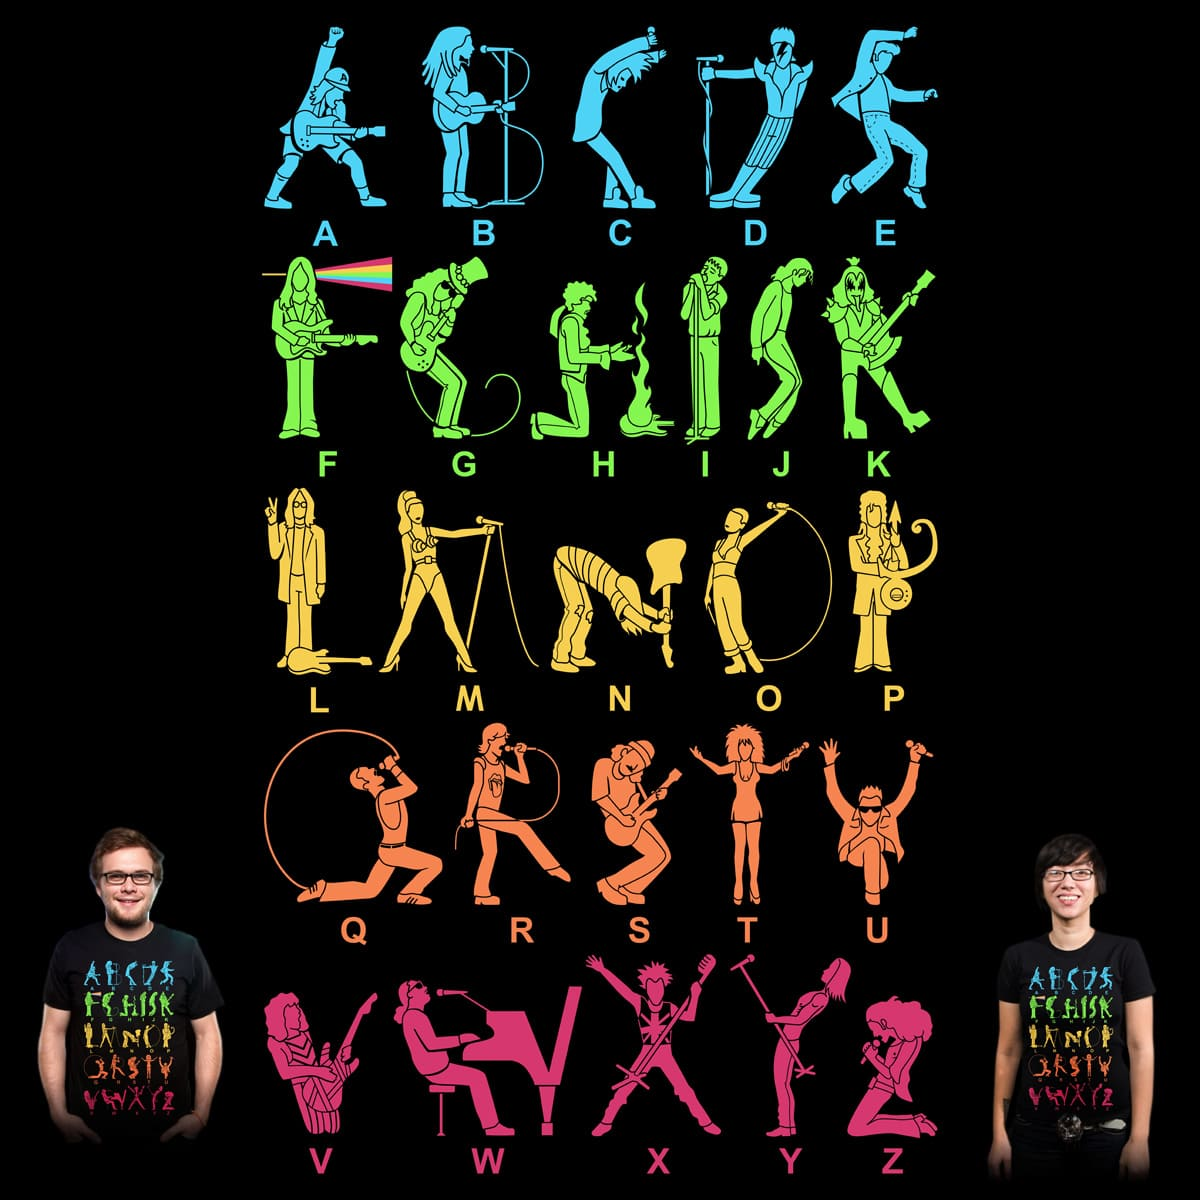 Musical alphabet a cool t shirt by graja on threadless Music shirt design ideas